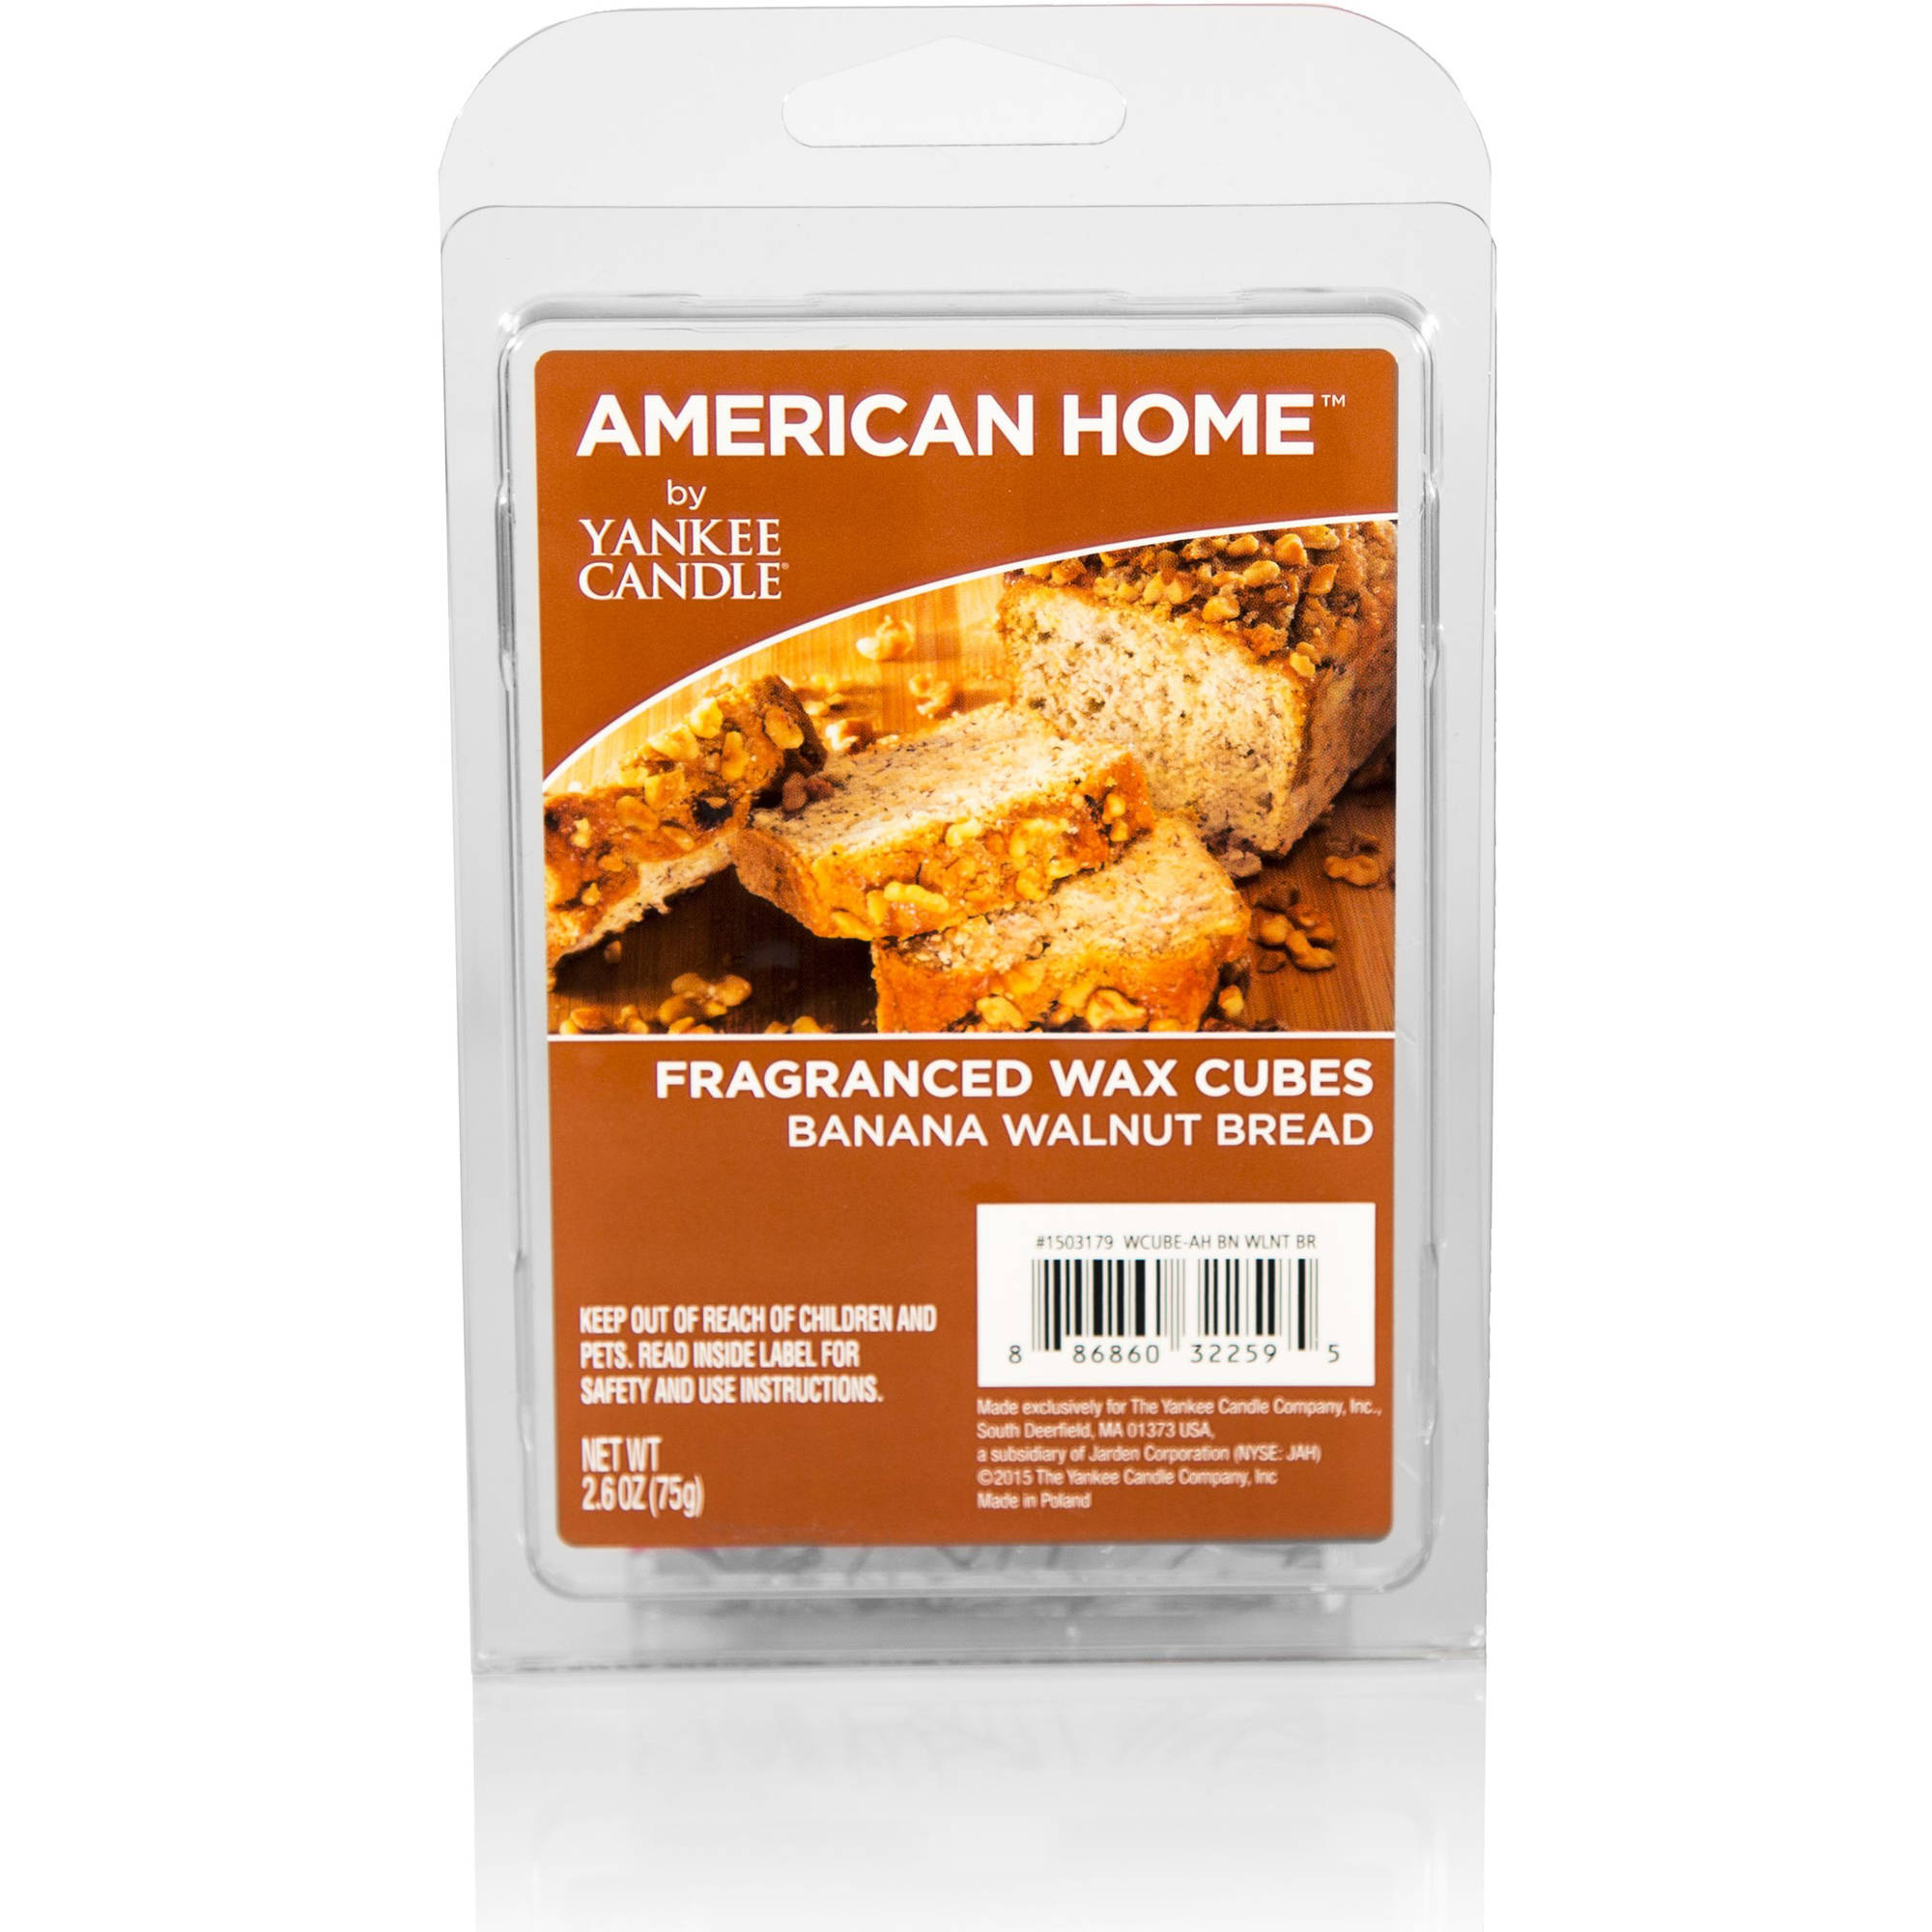 American Home by Yankee Candle Banana Walnut Bread, Fragranced Wax Cubes